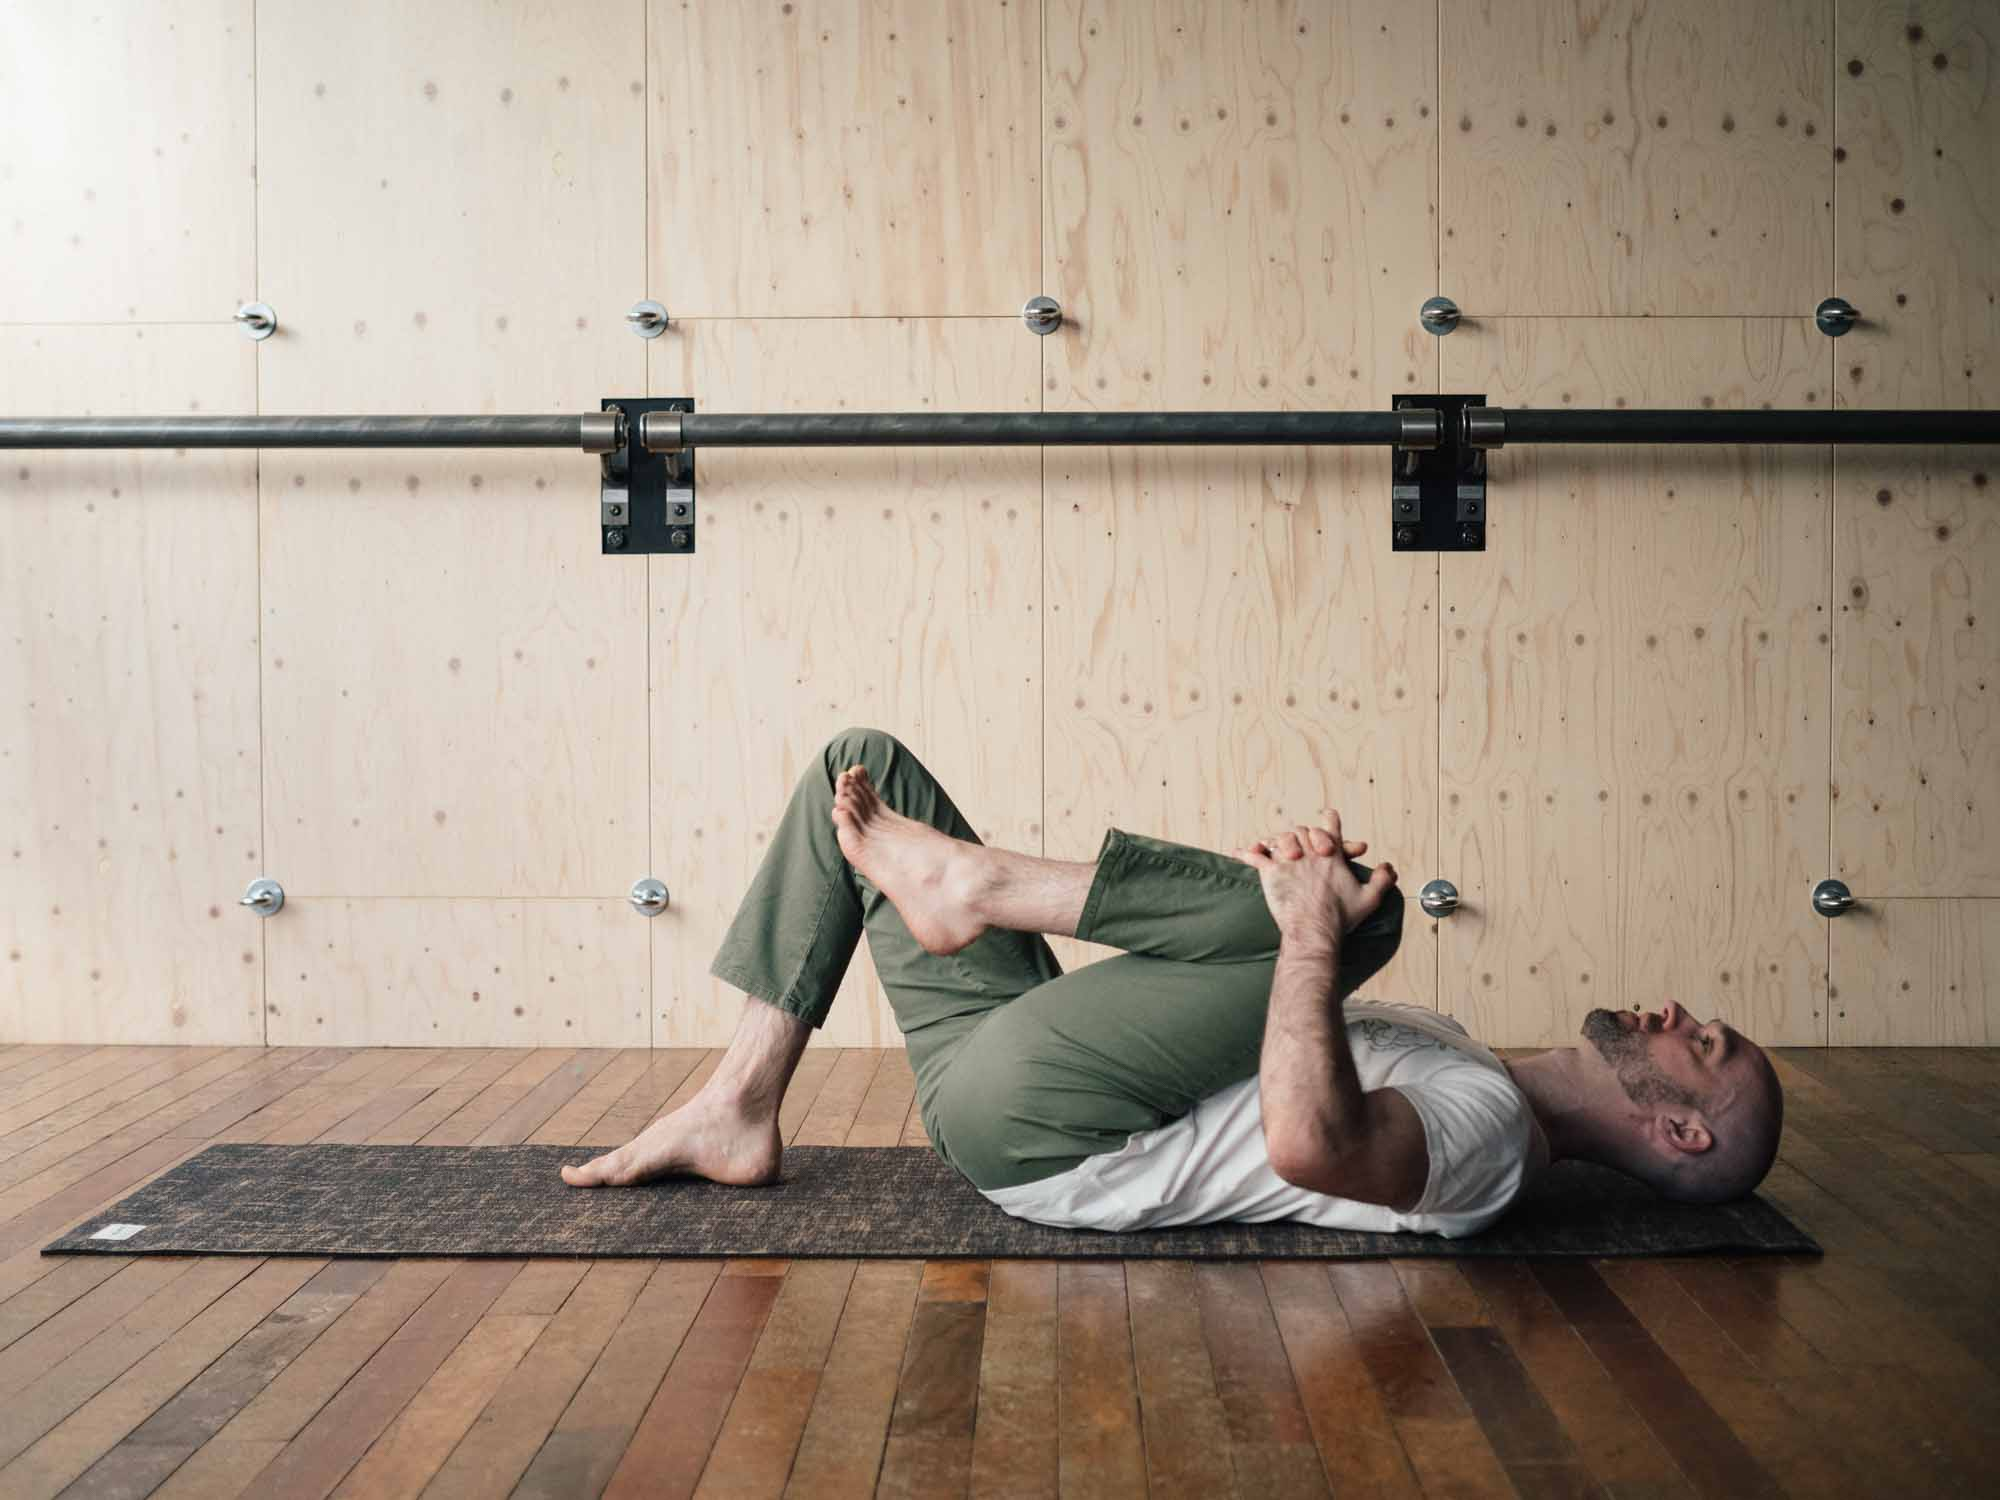 Man pulling one knee to his chest in a yoga studio